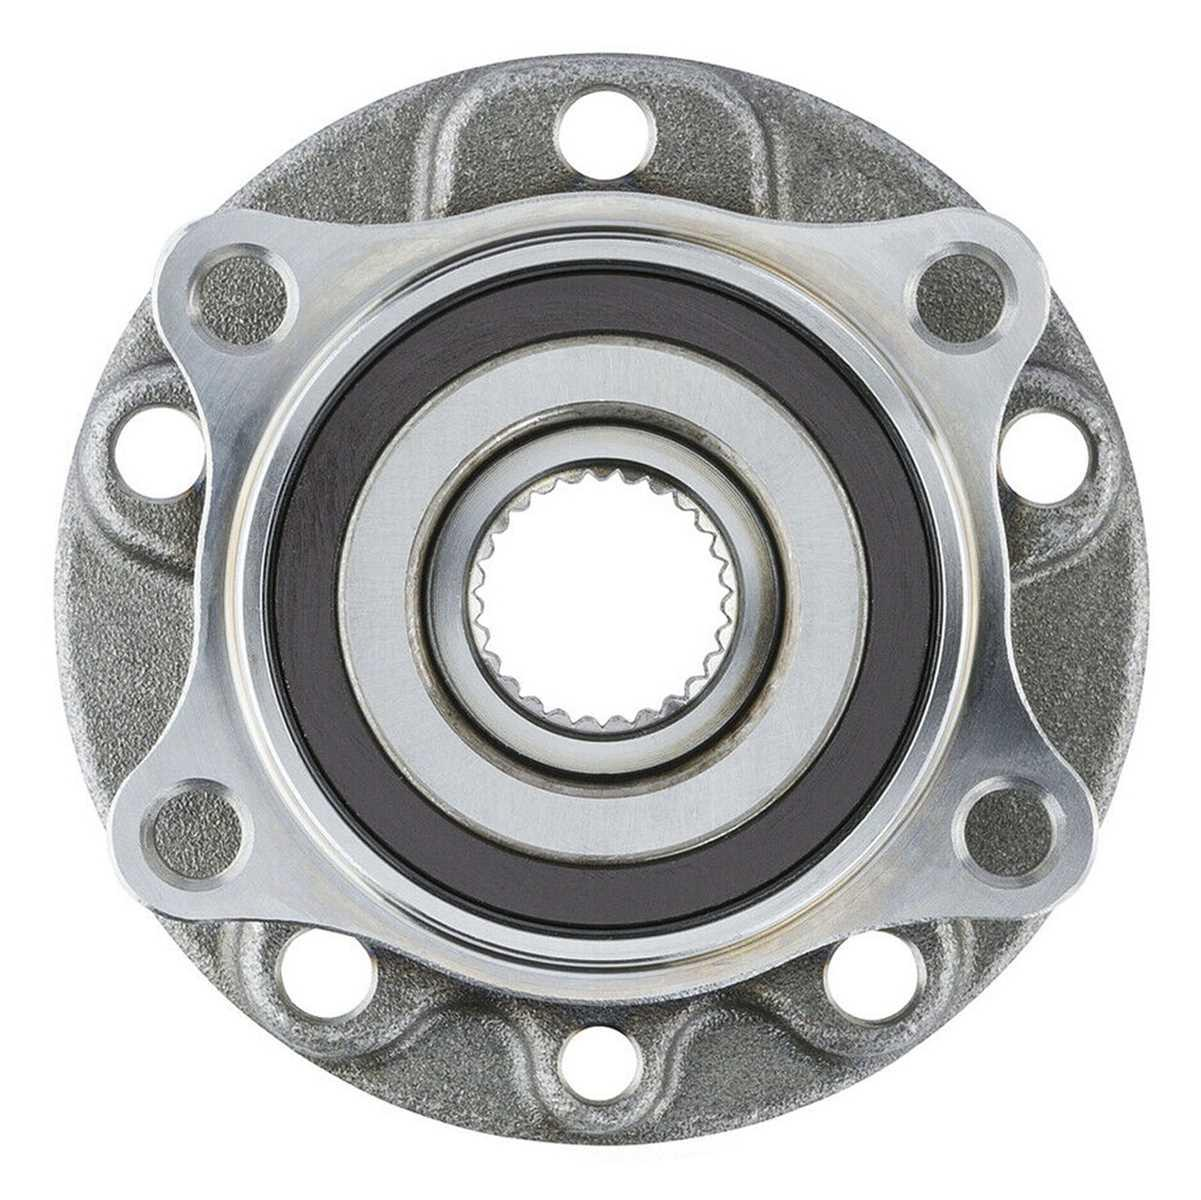 AutoShack HB615075PR Front Wheel Hub Bearing Assembly Pair 2 Pieces Fits Driver and Passenger Side